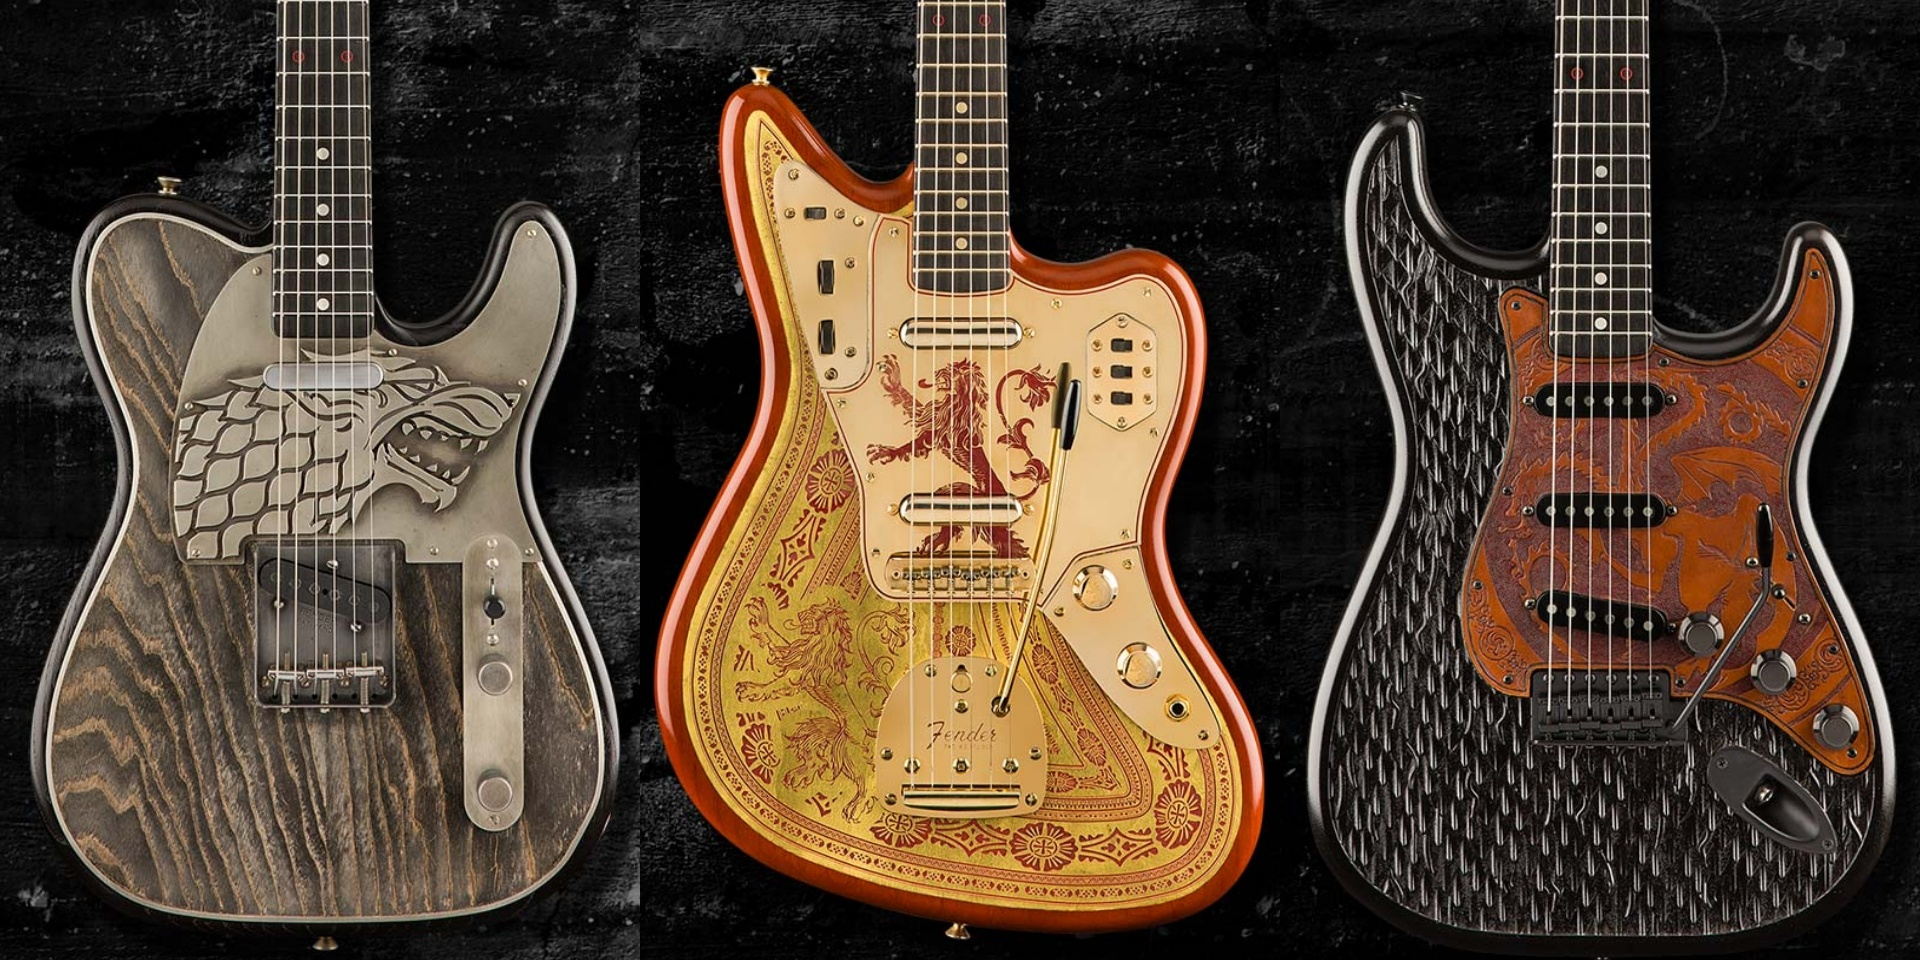 Fender releases 3 Game Of Thrones-themed guitars with the Sigil Collection